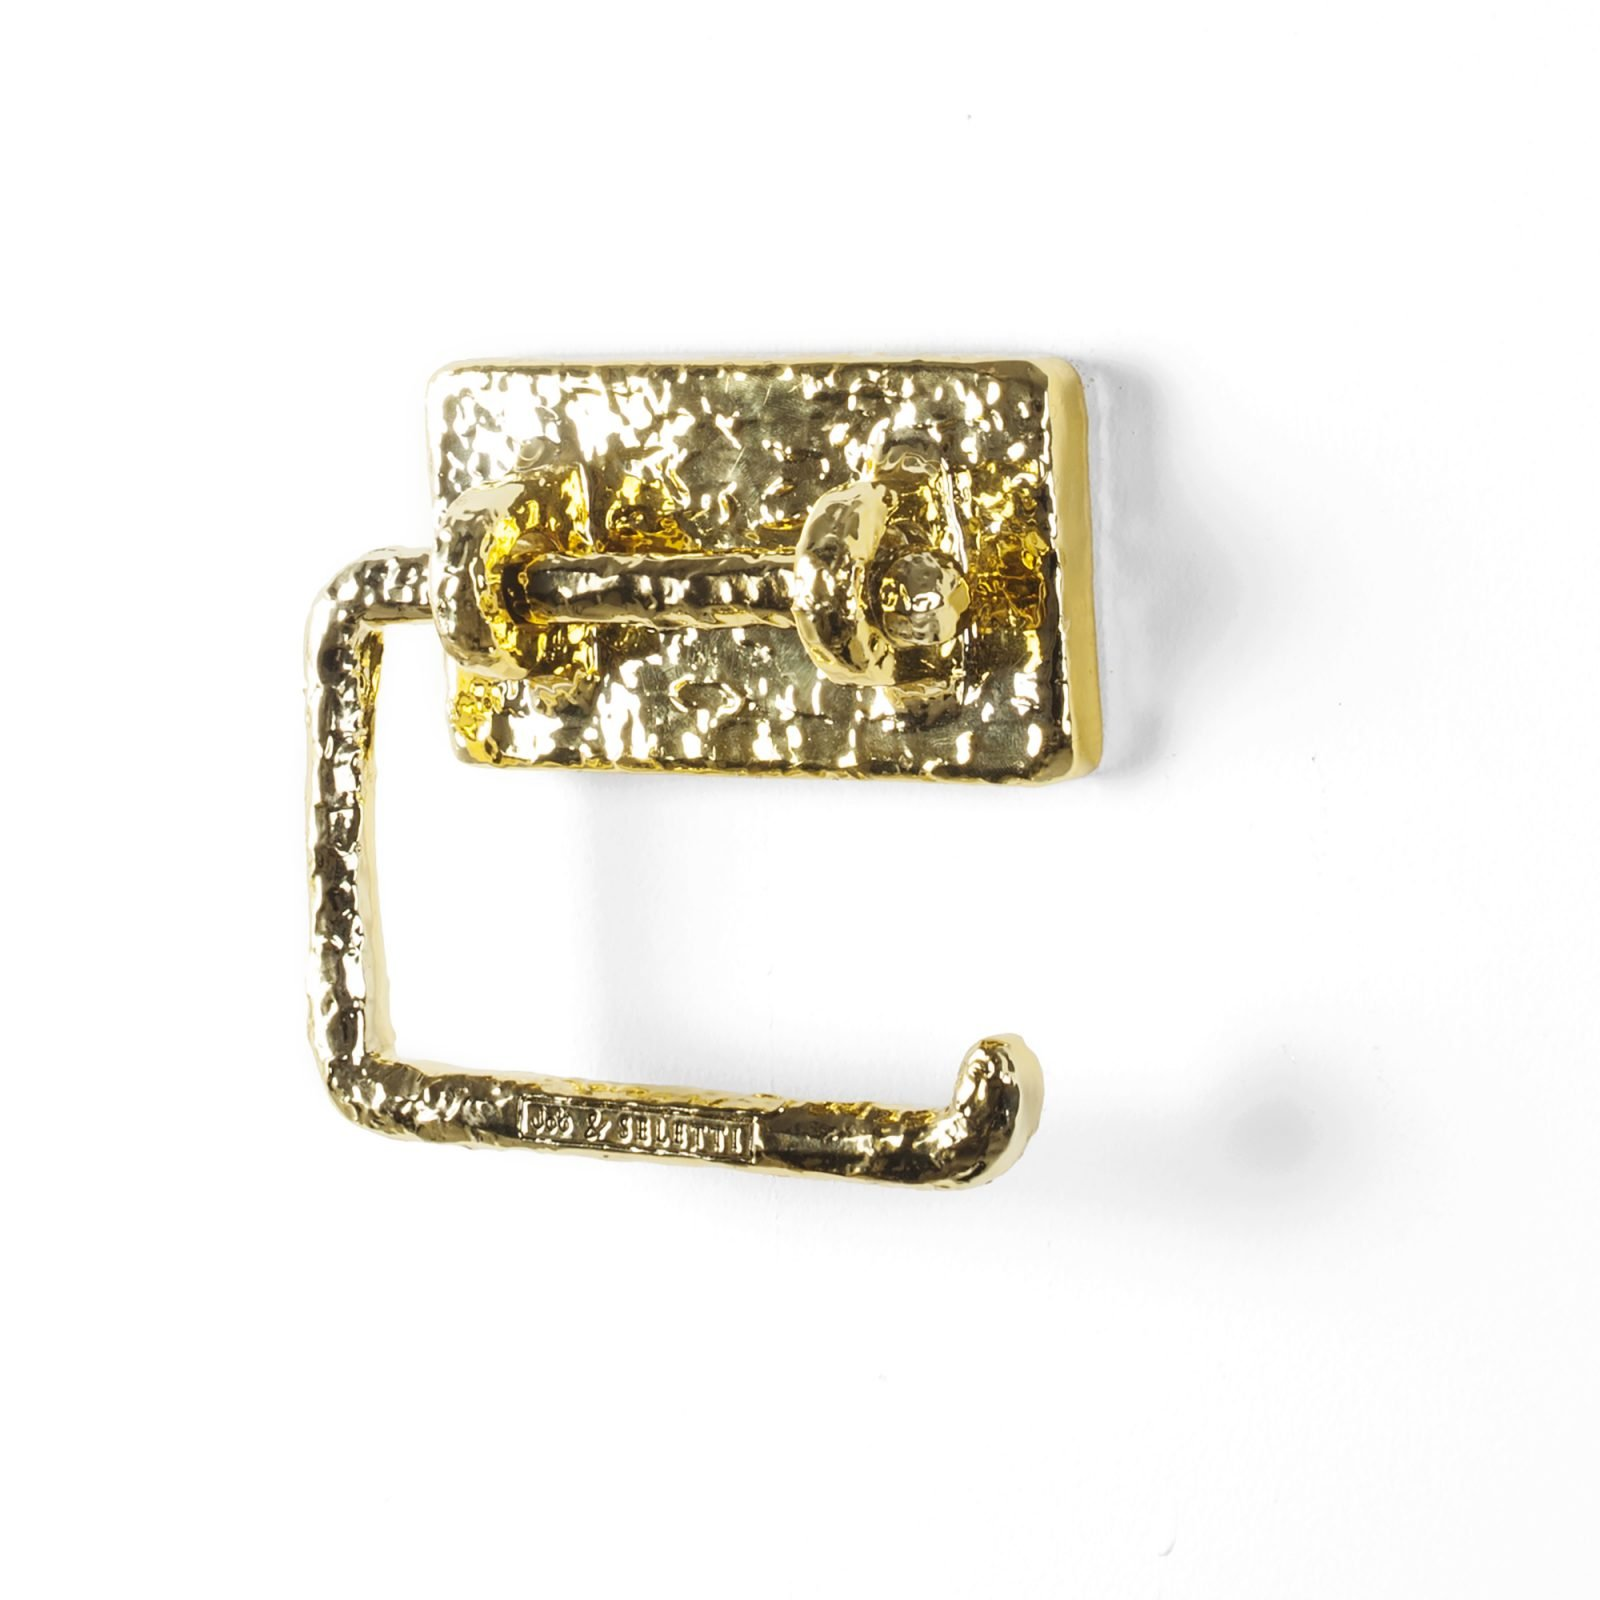 maurizio-toilet-roll-holder-gold-2